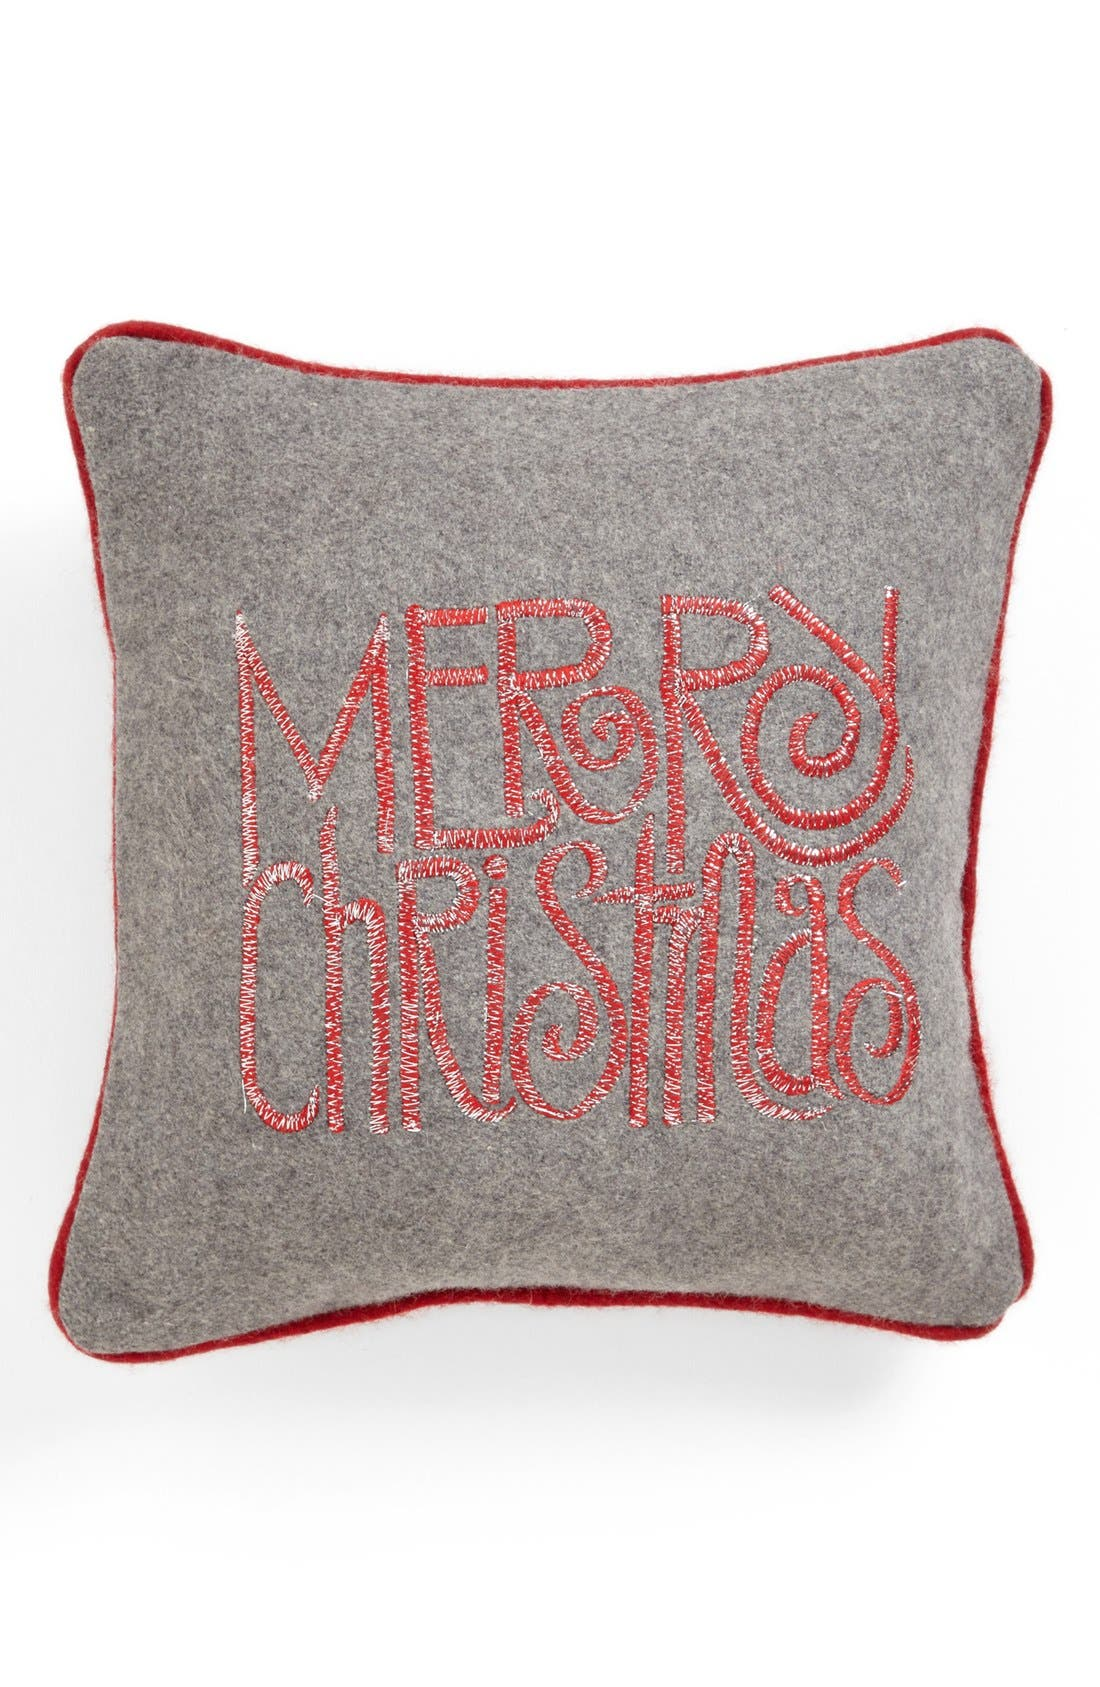 Main Image - Shiraleah 'Merry Christmas' Square Pillow